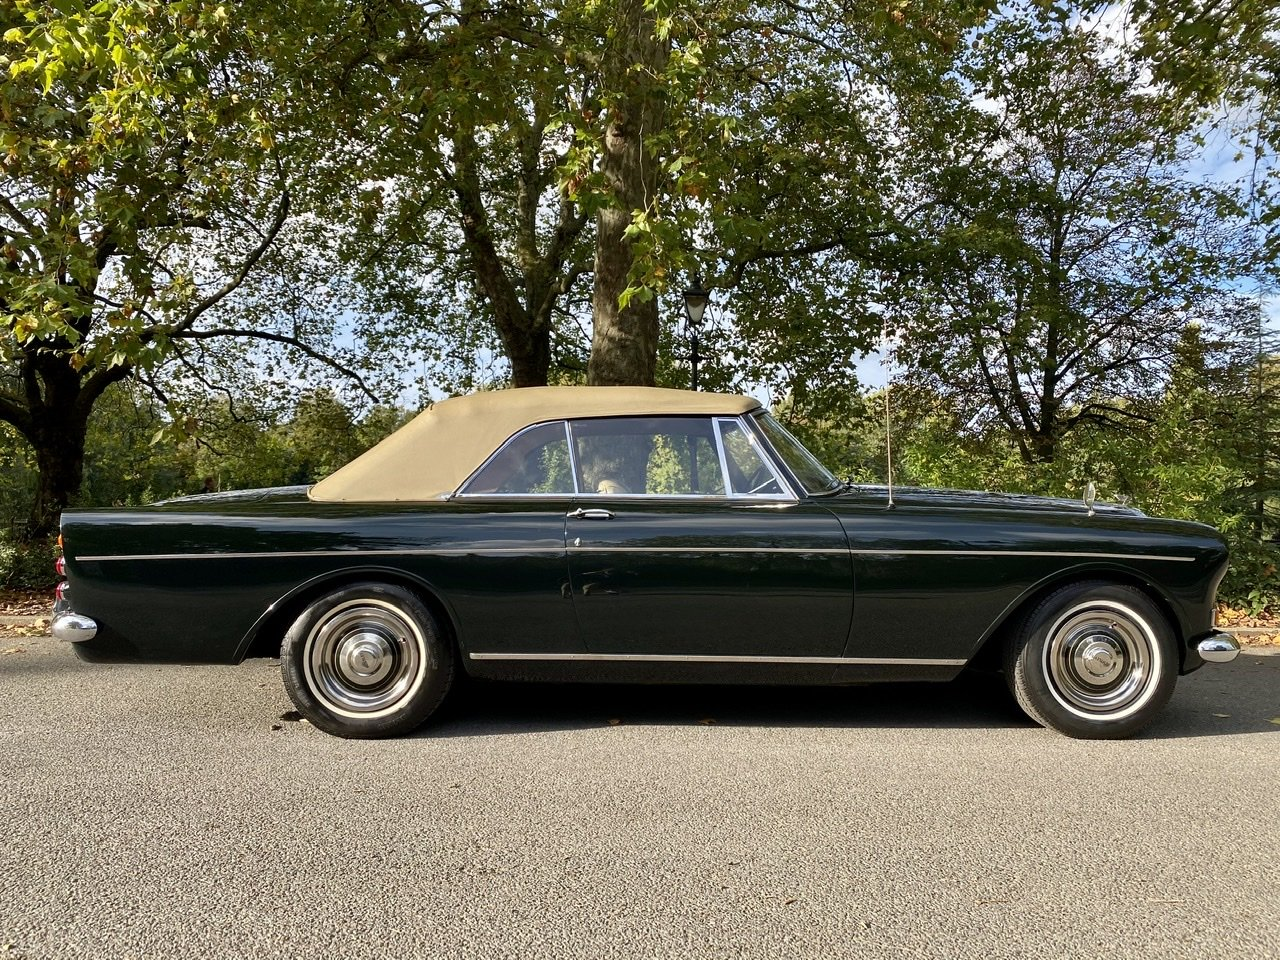 1964 Bentley S3 Continental Drop Head Coupe For Sale (picture 7 of 24)